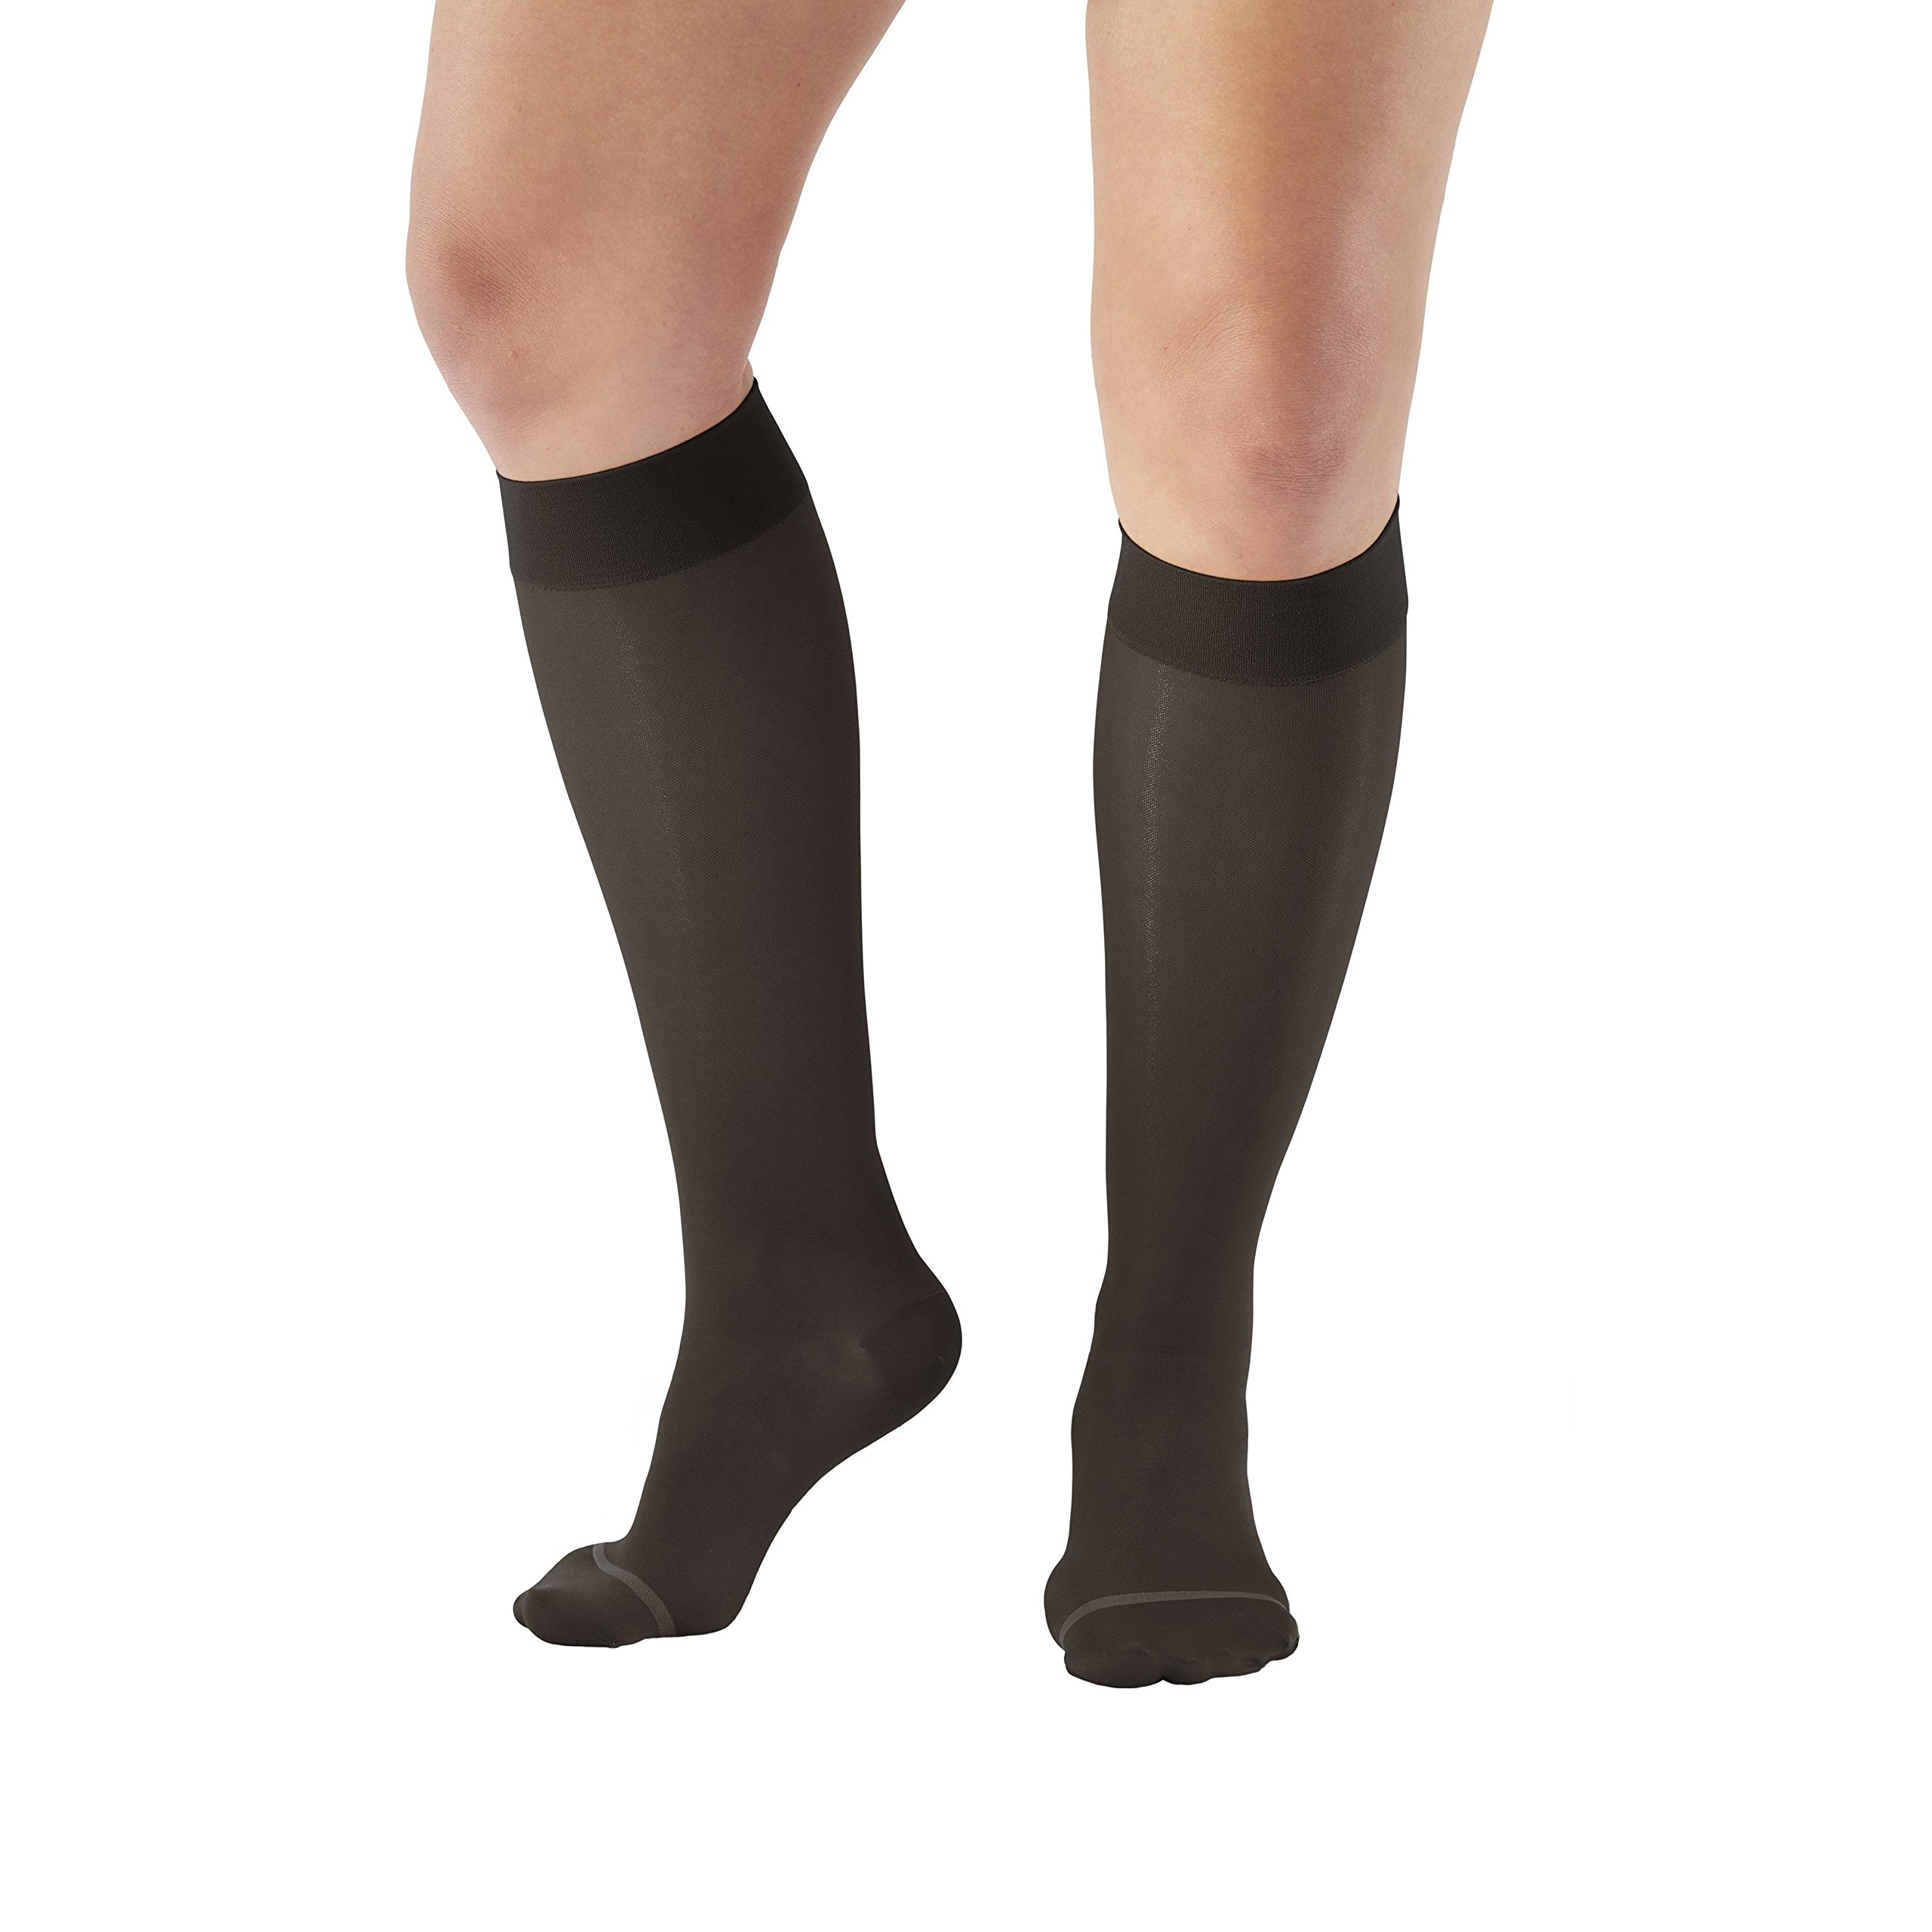 Ames Walker Women's AW Style 18/43 Sheer Support Closed Toe Compression Knee High Stockings - 20-30 mmHg Black Small 18-S-BLACK Nylon/Spandex